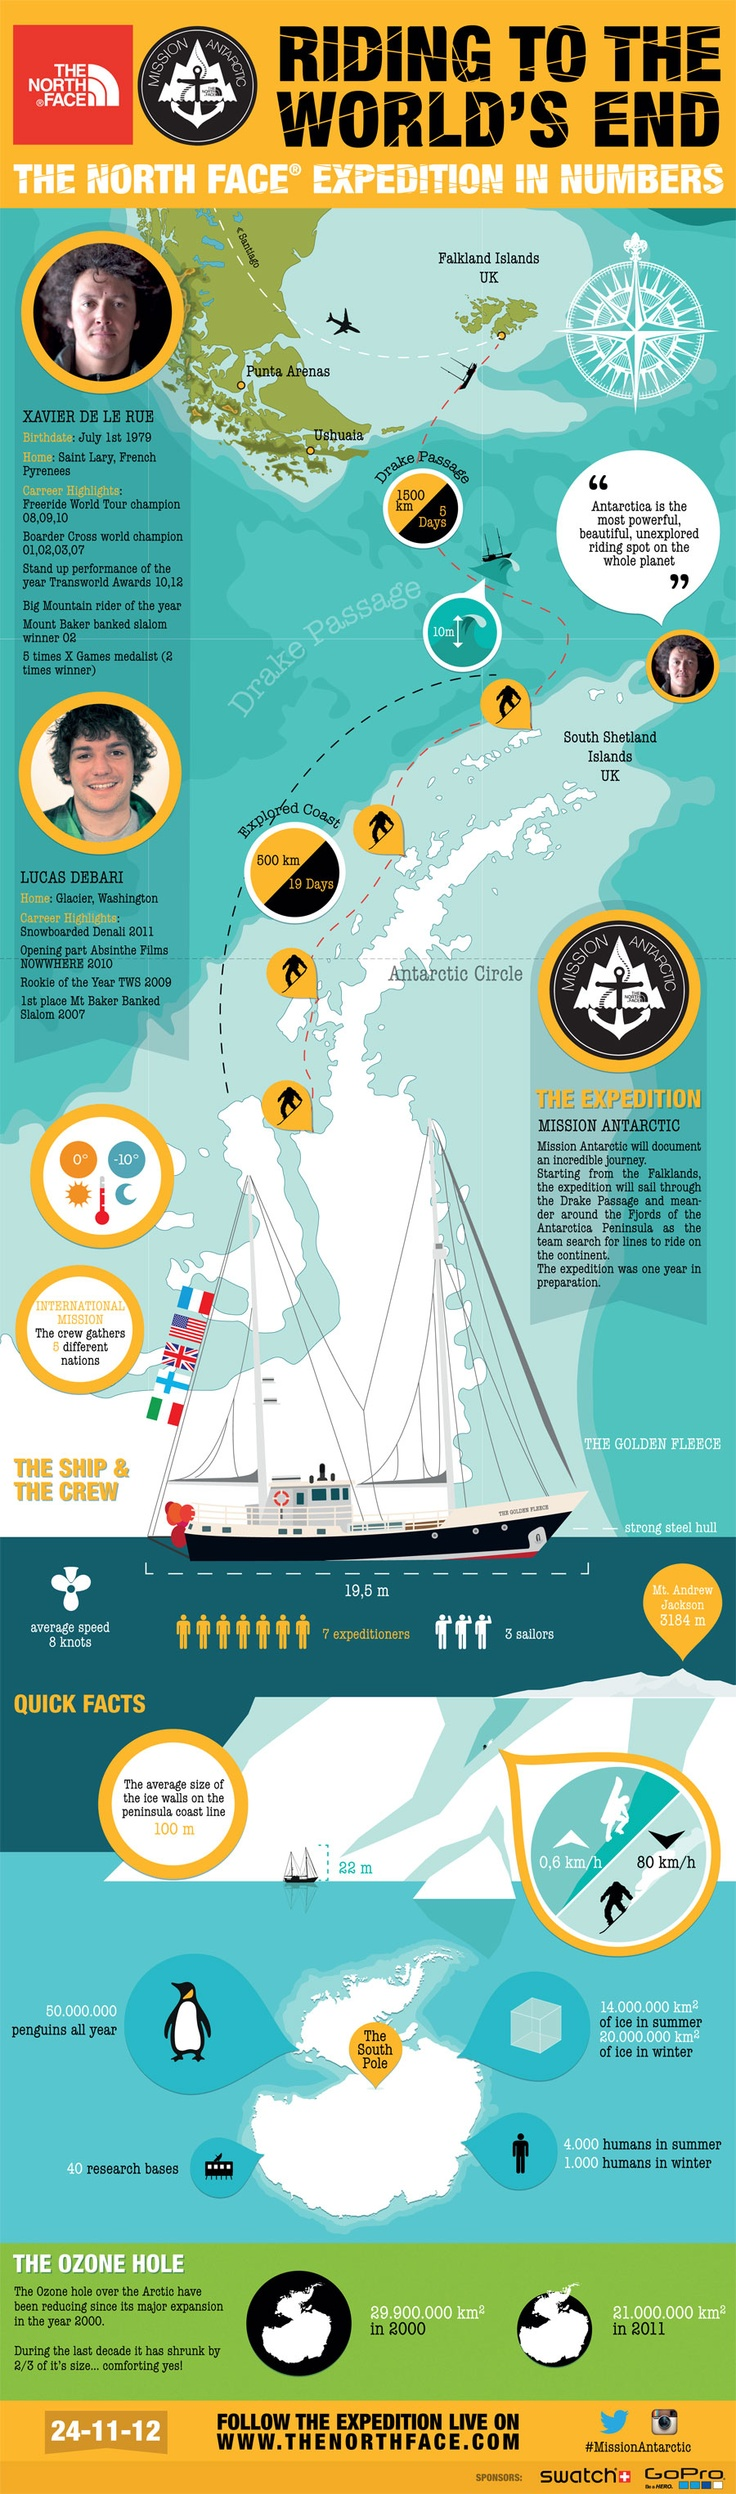 Check out this #infographic with facts about The North Face Mission Antarctic expedition with renowned snowboarders Xavier De Le Rue and Lucas Debari. By @thenorthfaceeu